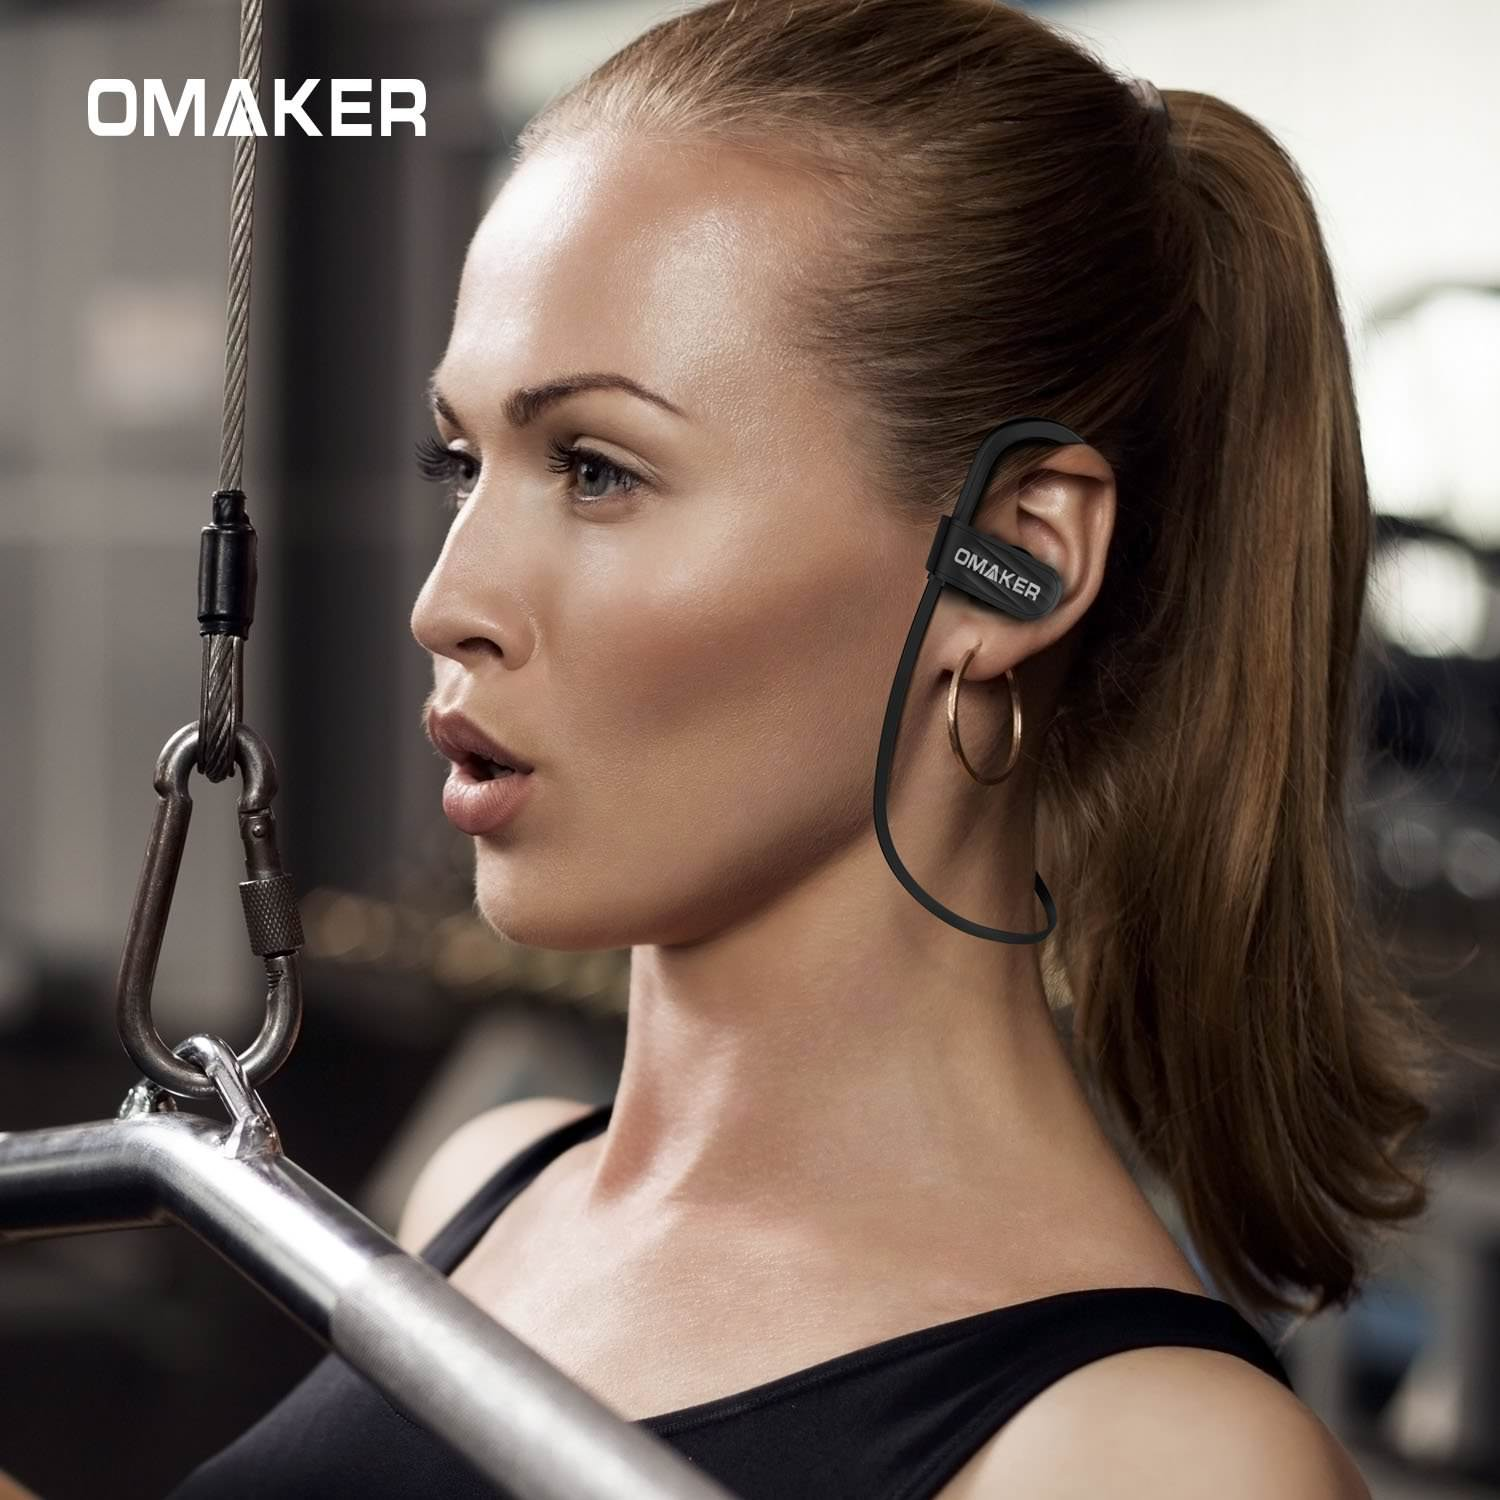 omaker-wirelessheadphone1